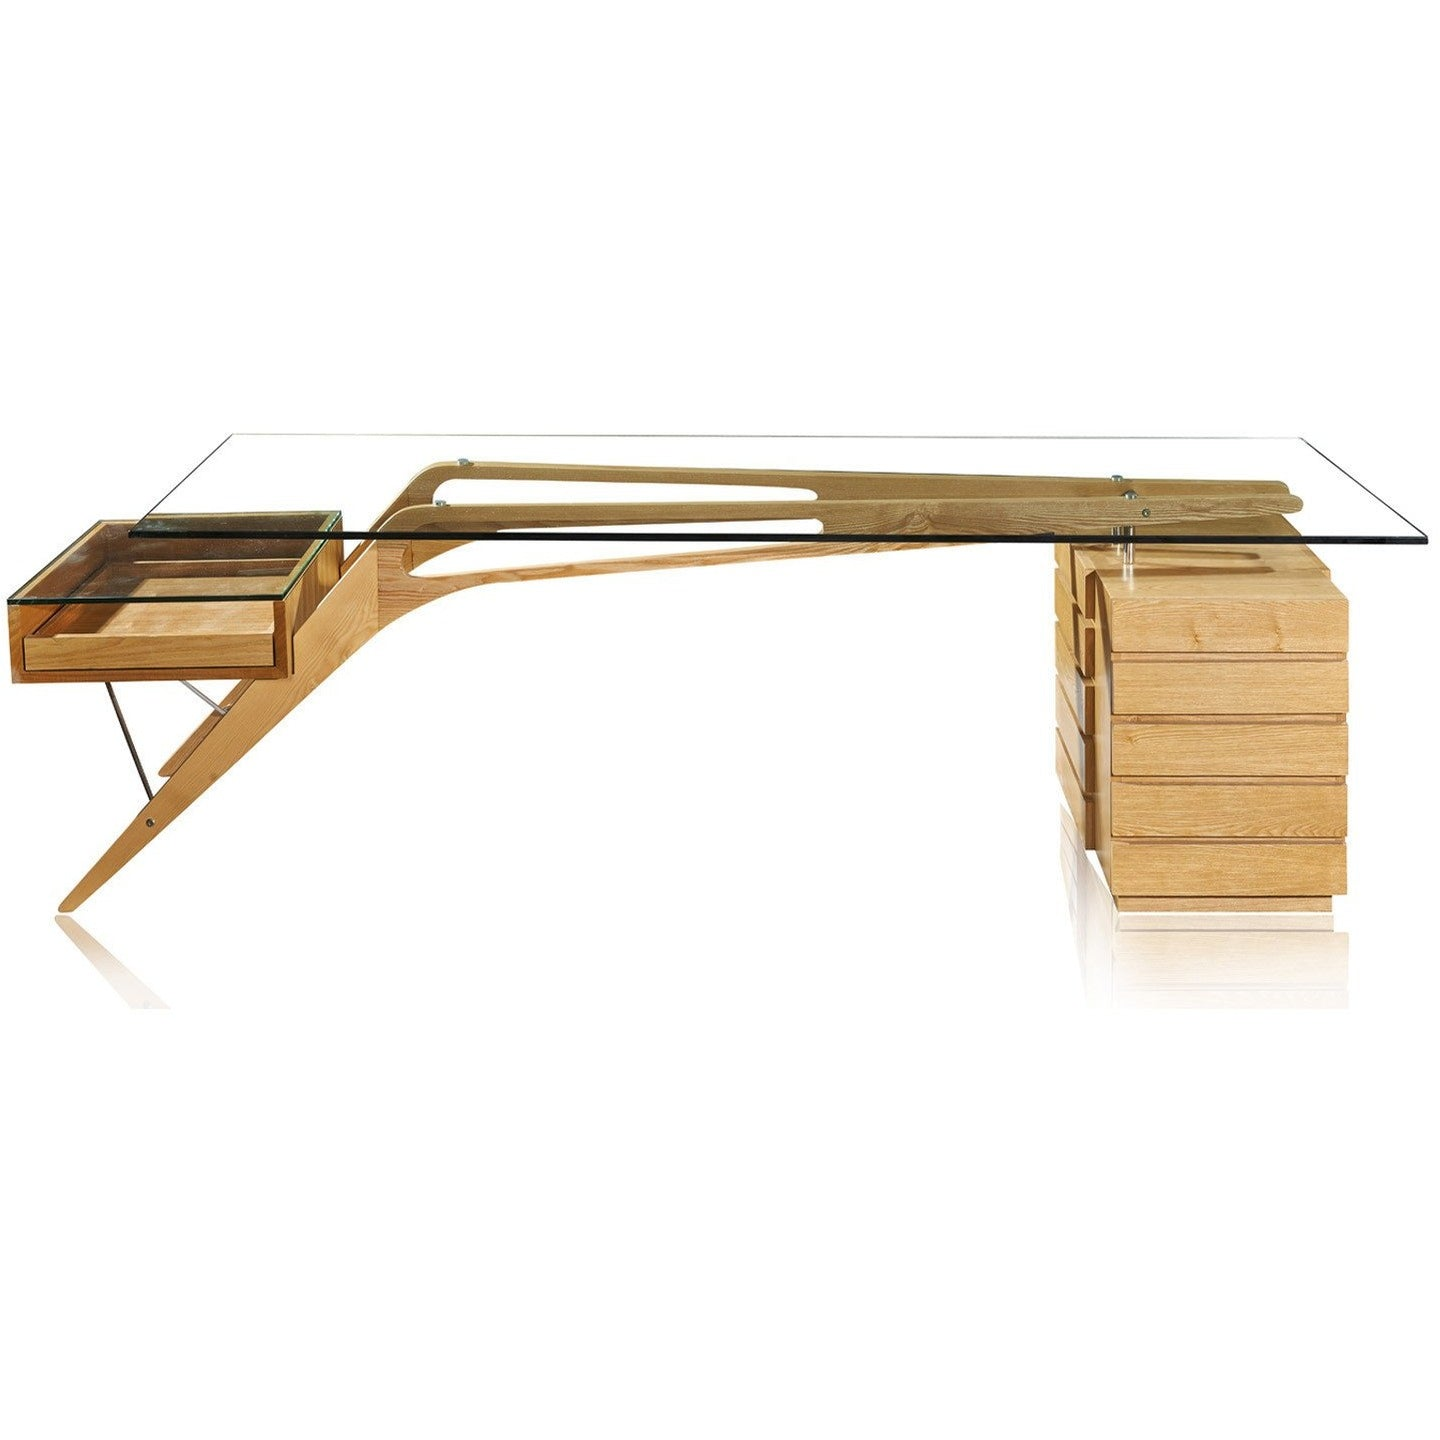 Lanna Furniture Villa Desk , Desks - Lanna Furniture, Minimal & Modern - 1